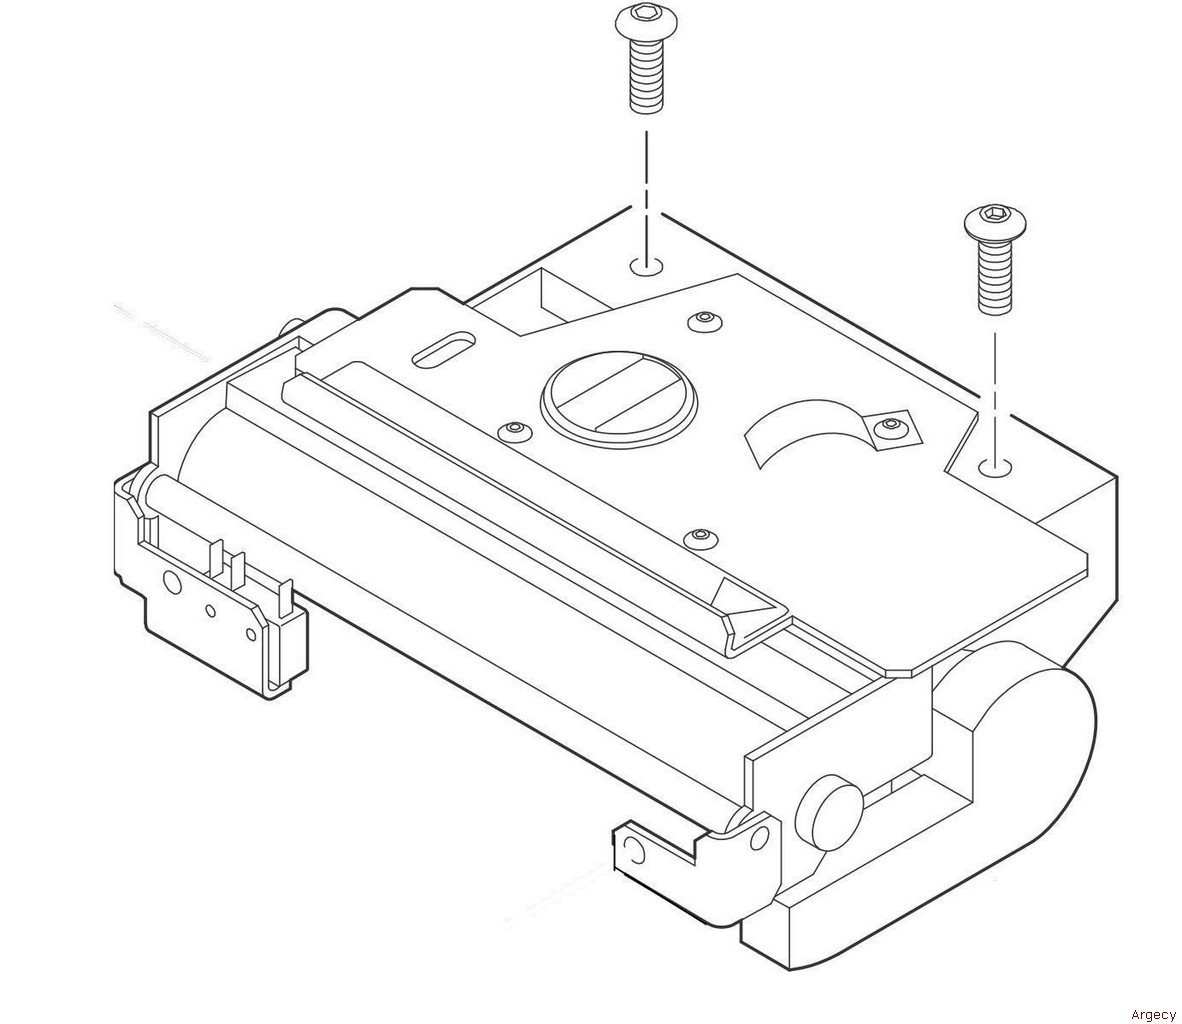 Printronix 258615-002 - purchase from Argecy